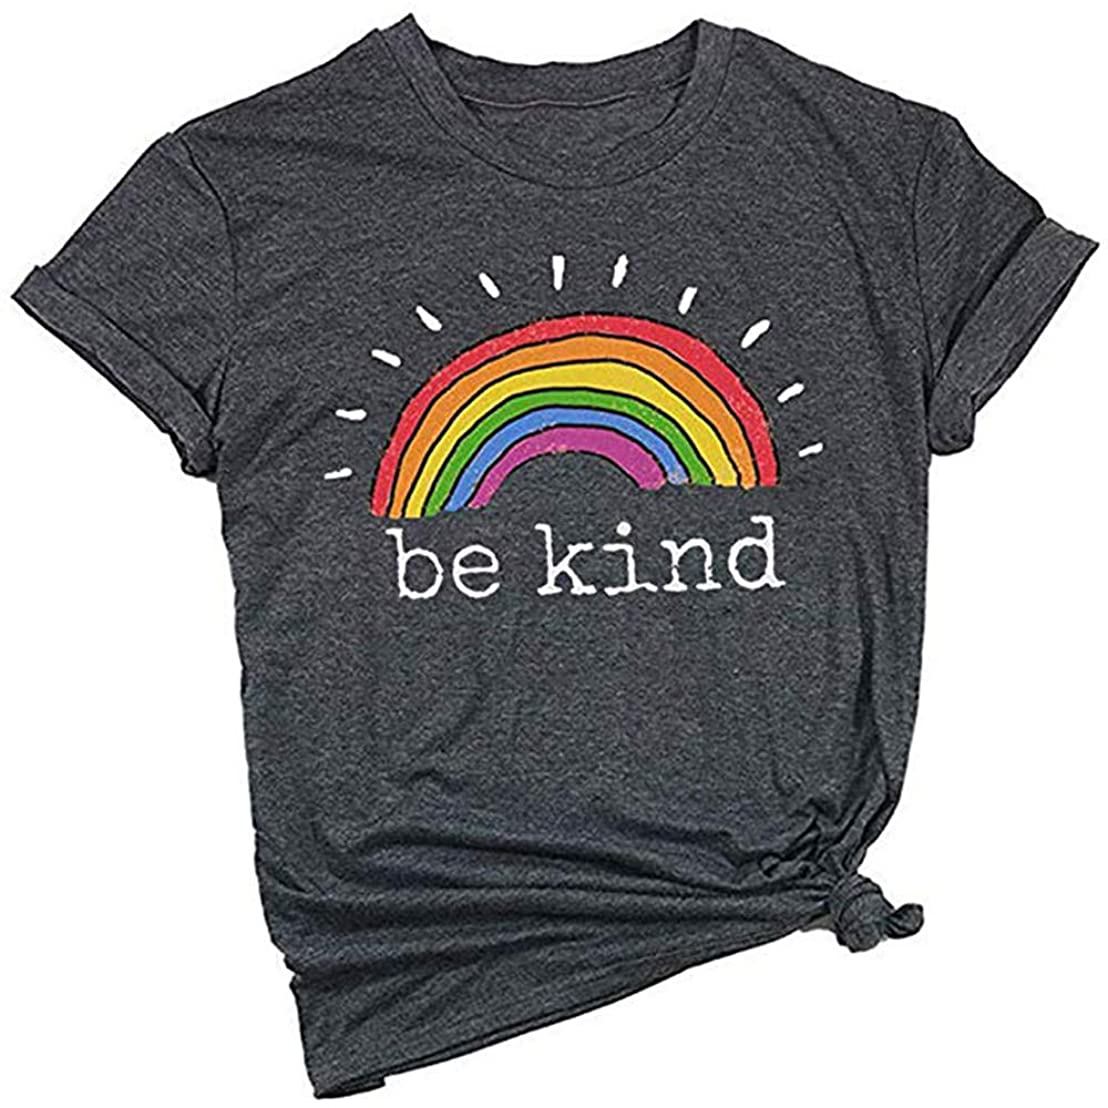 Mahrokh Be Kind Tshirts Women Rainbow Graphic Tees Inspirational T Shirts Casual Short Sleeve Tops